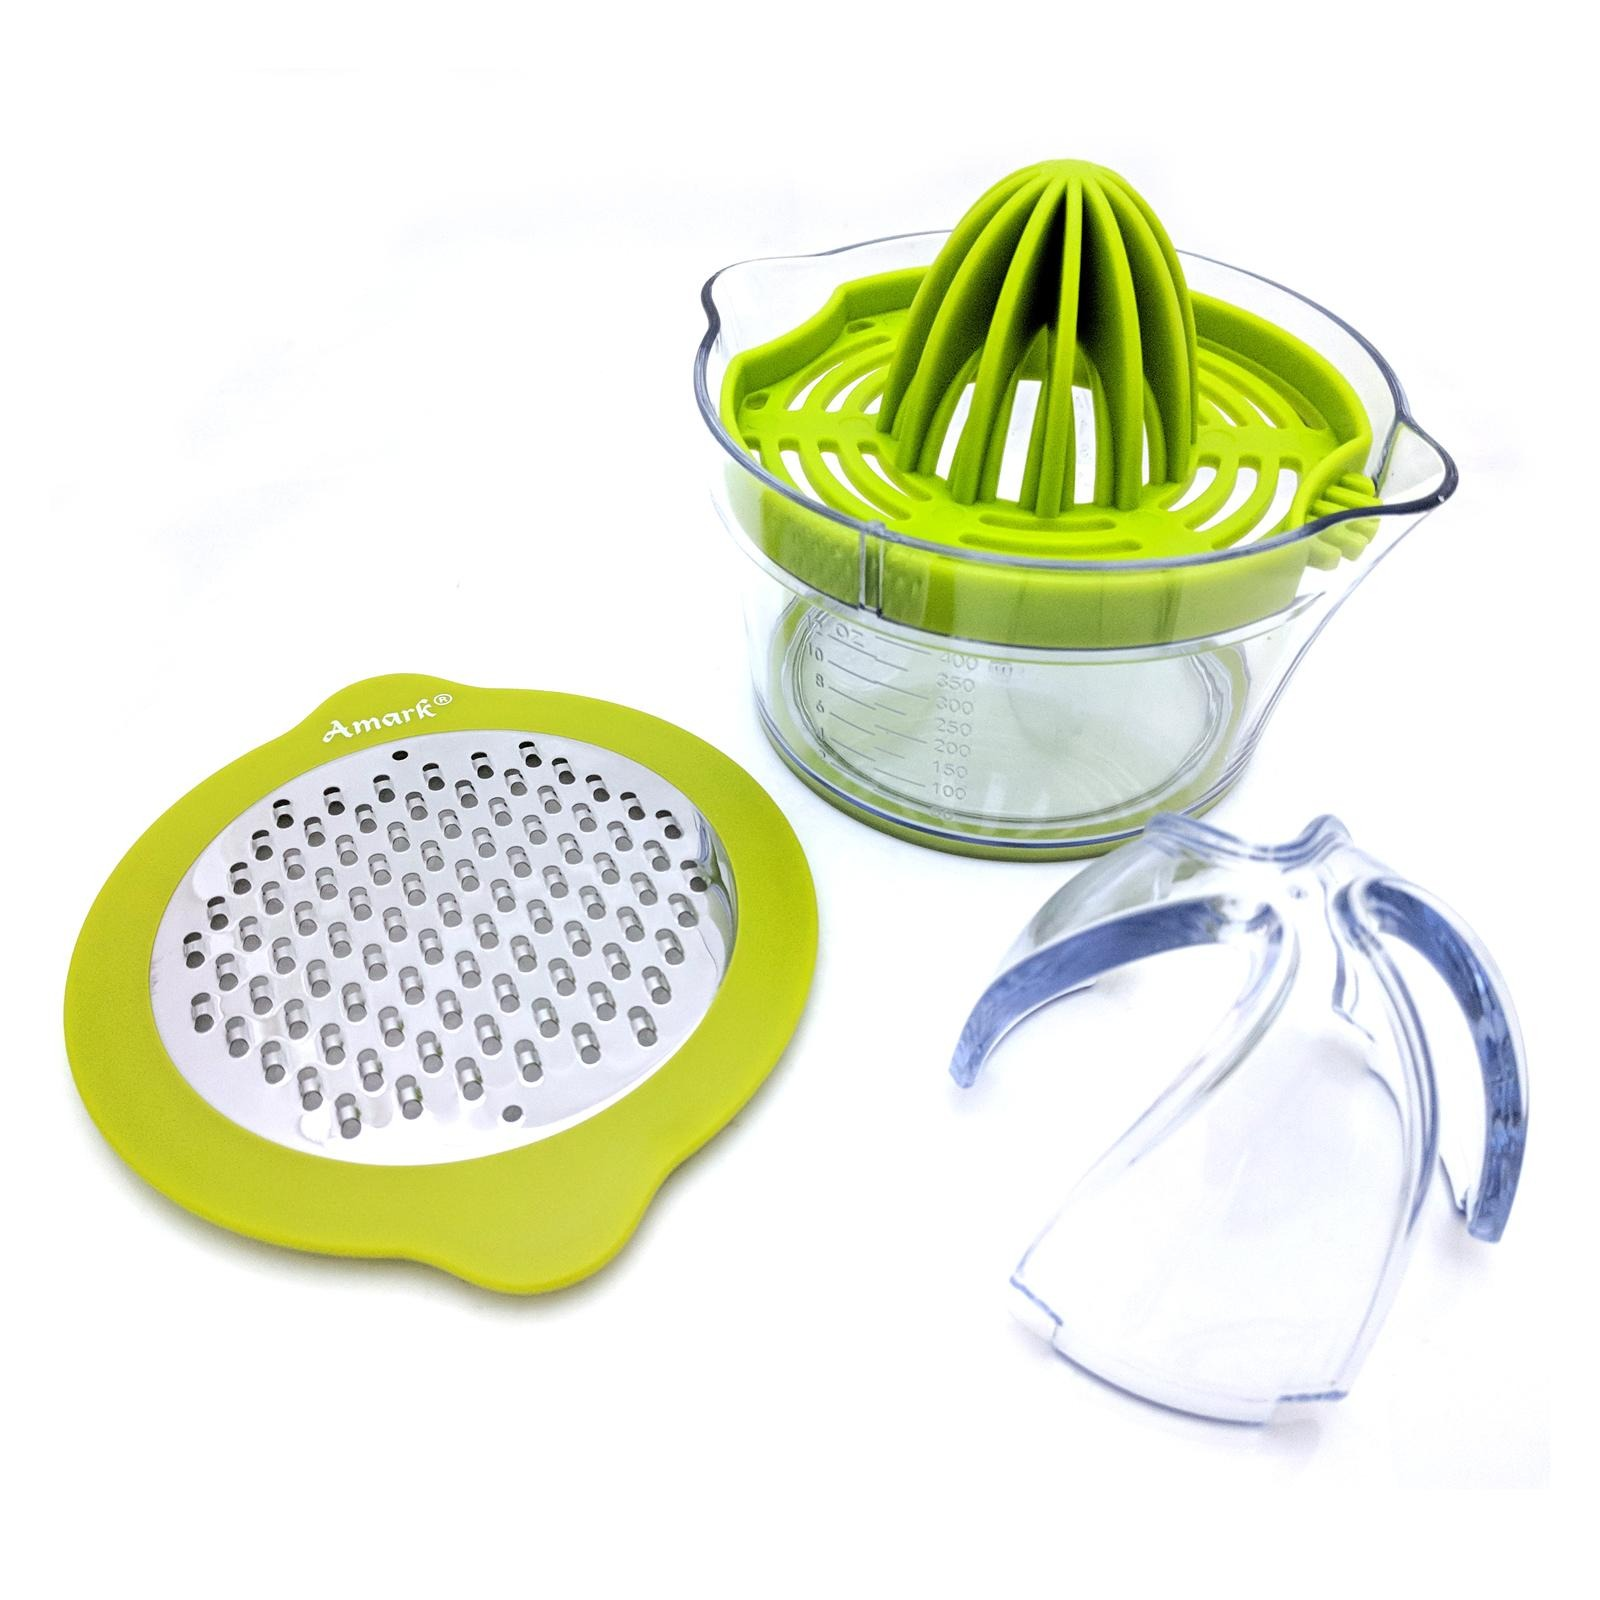 Amark Multifunction 4-In-1 Juicer & Grater